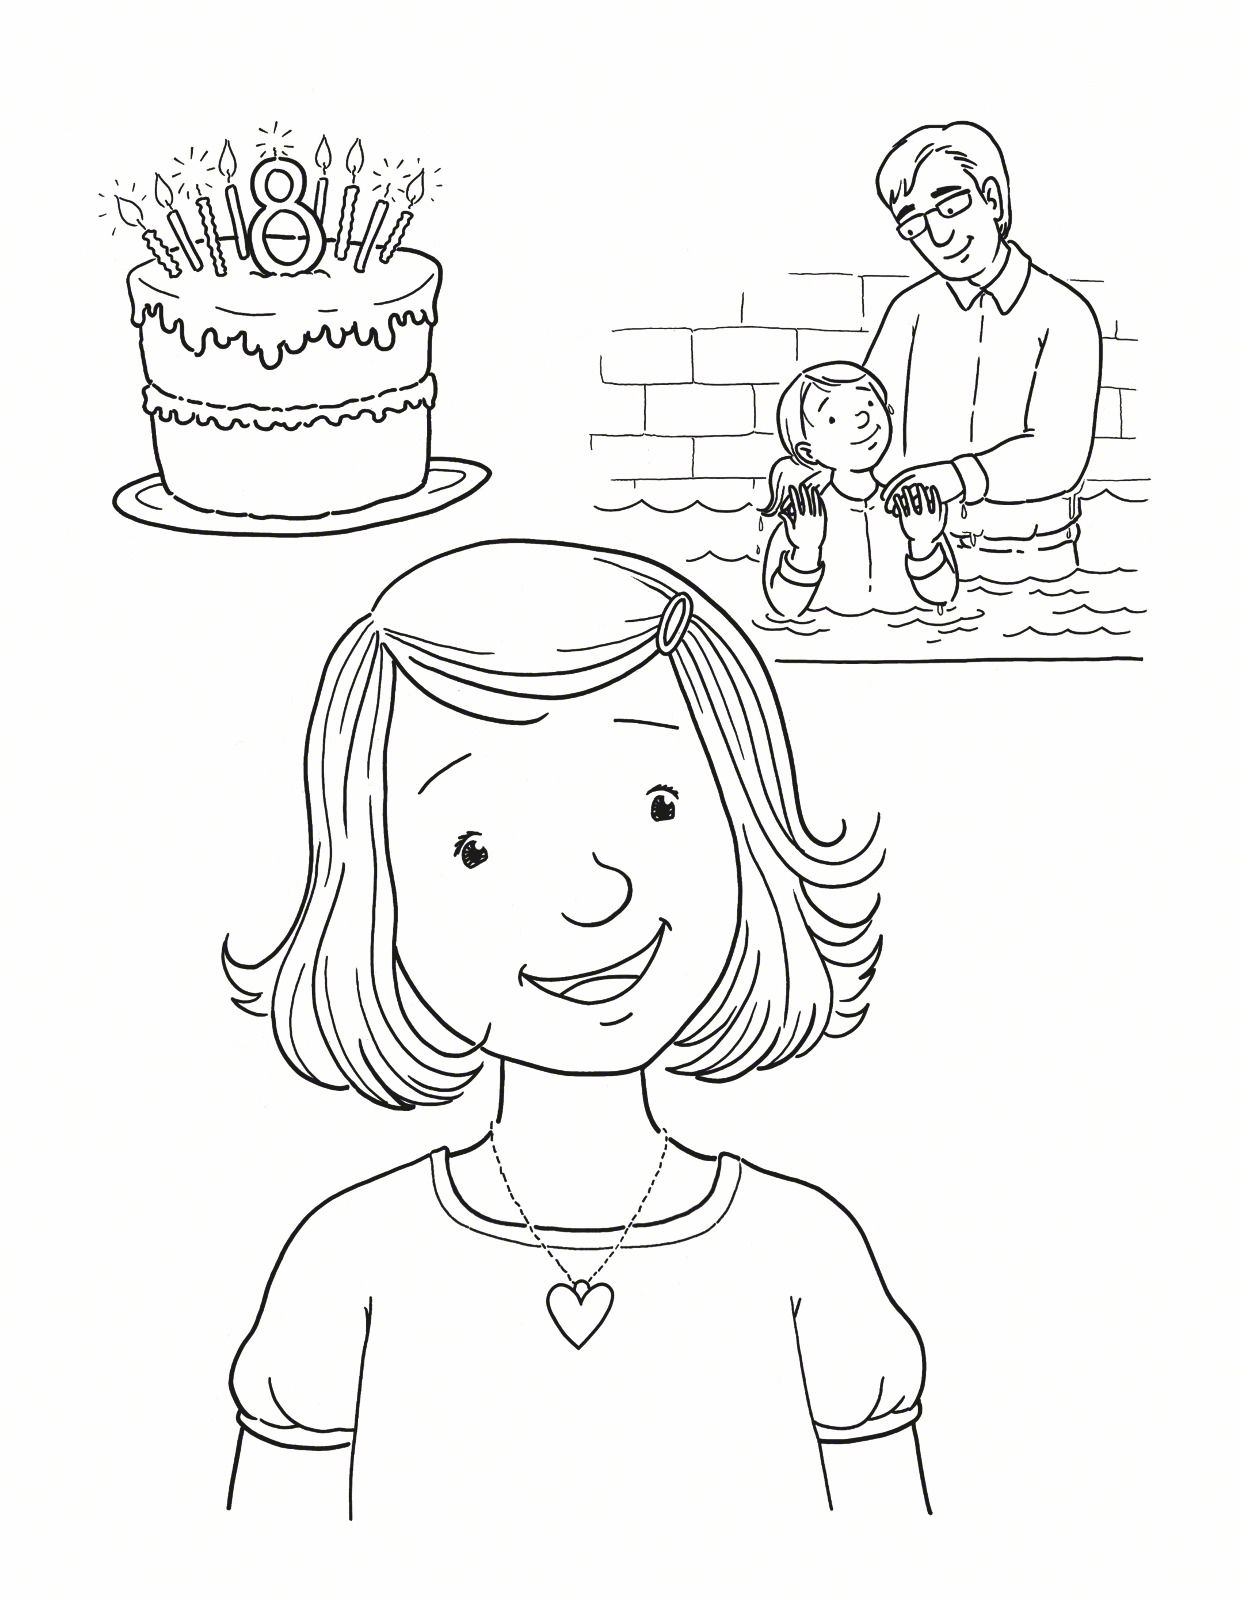 8th Birthday Baptism Primary Lds source to Print Of Coloring Pages Thanksgiving Turkey Baptism Page Contemporary Style Download